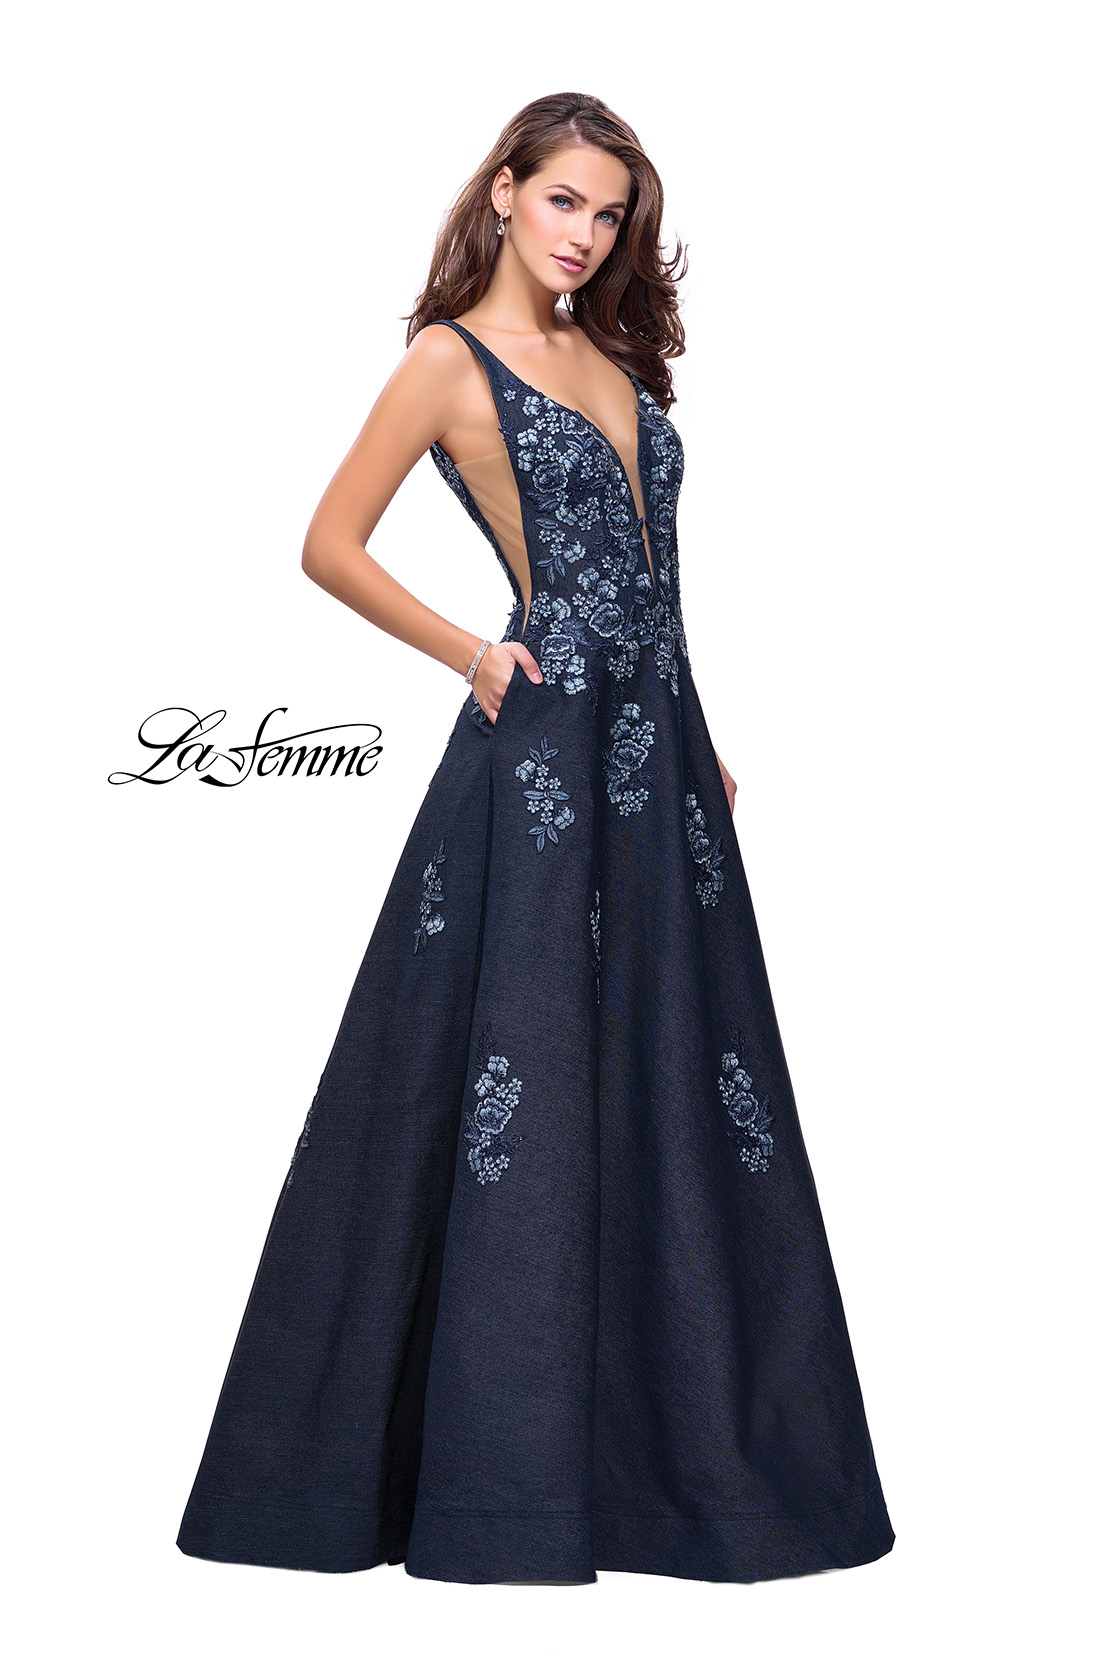 Denim Prom Dress with Floral Details and A Line Skirt